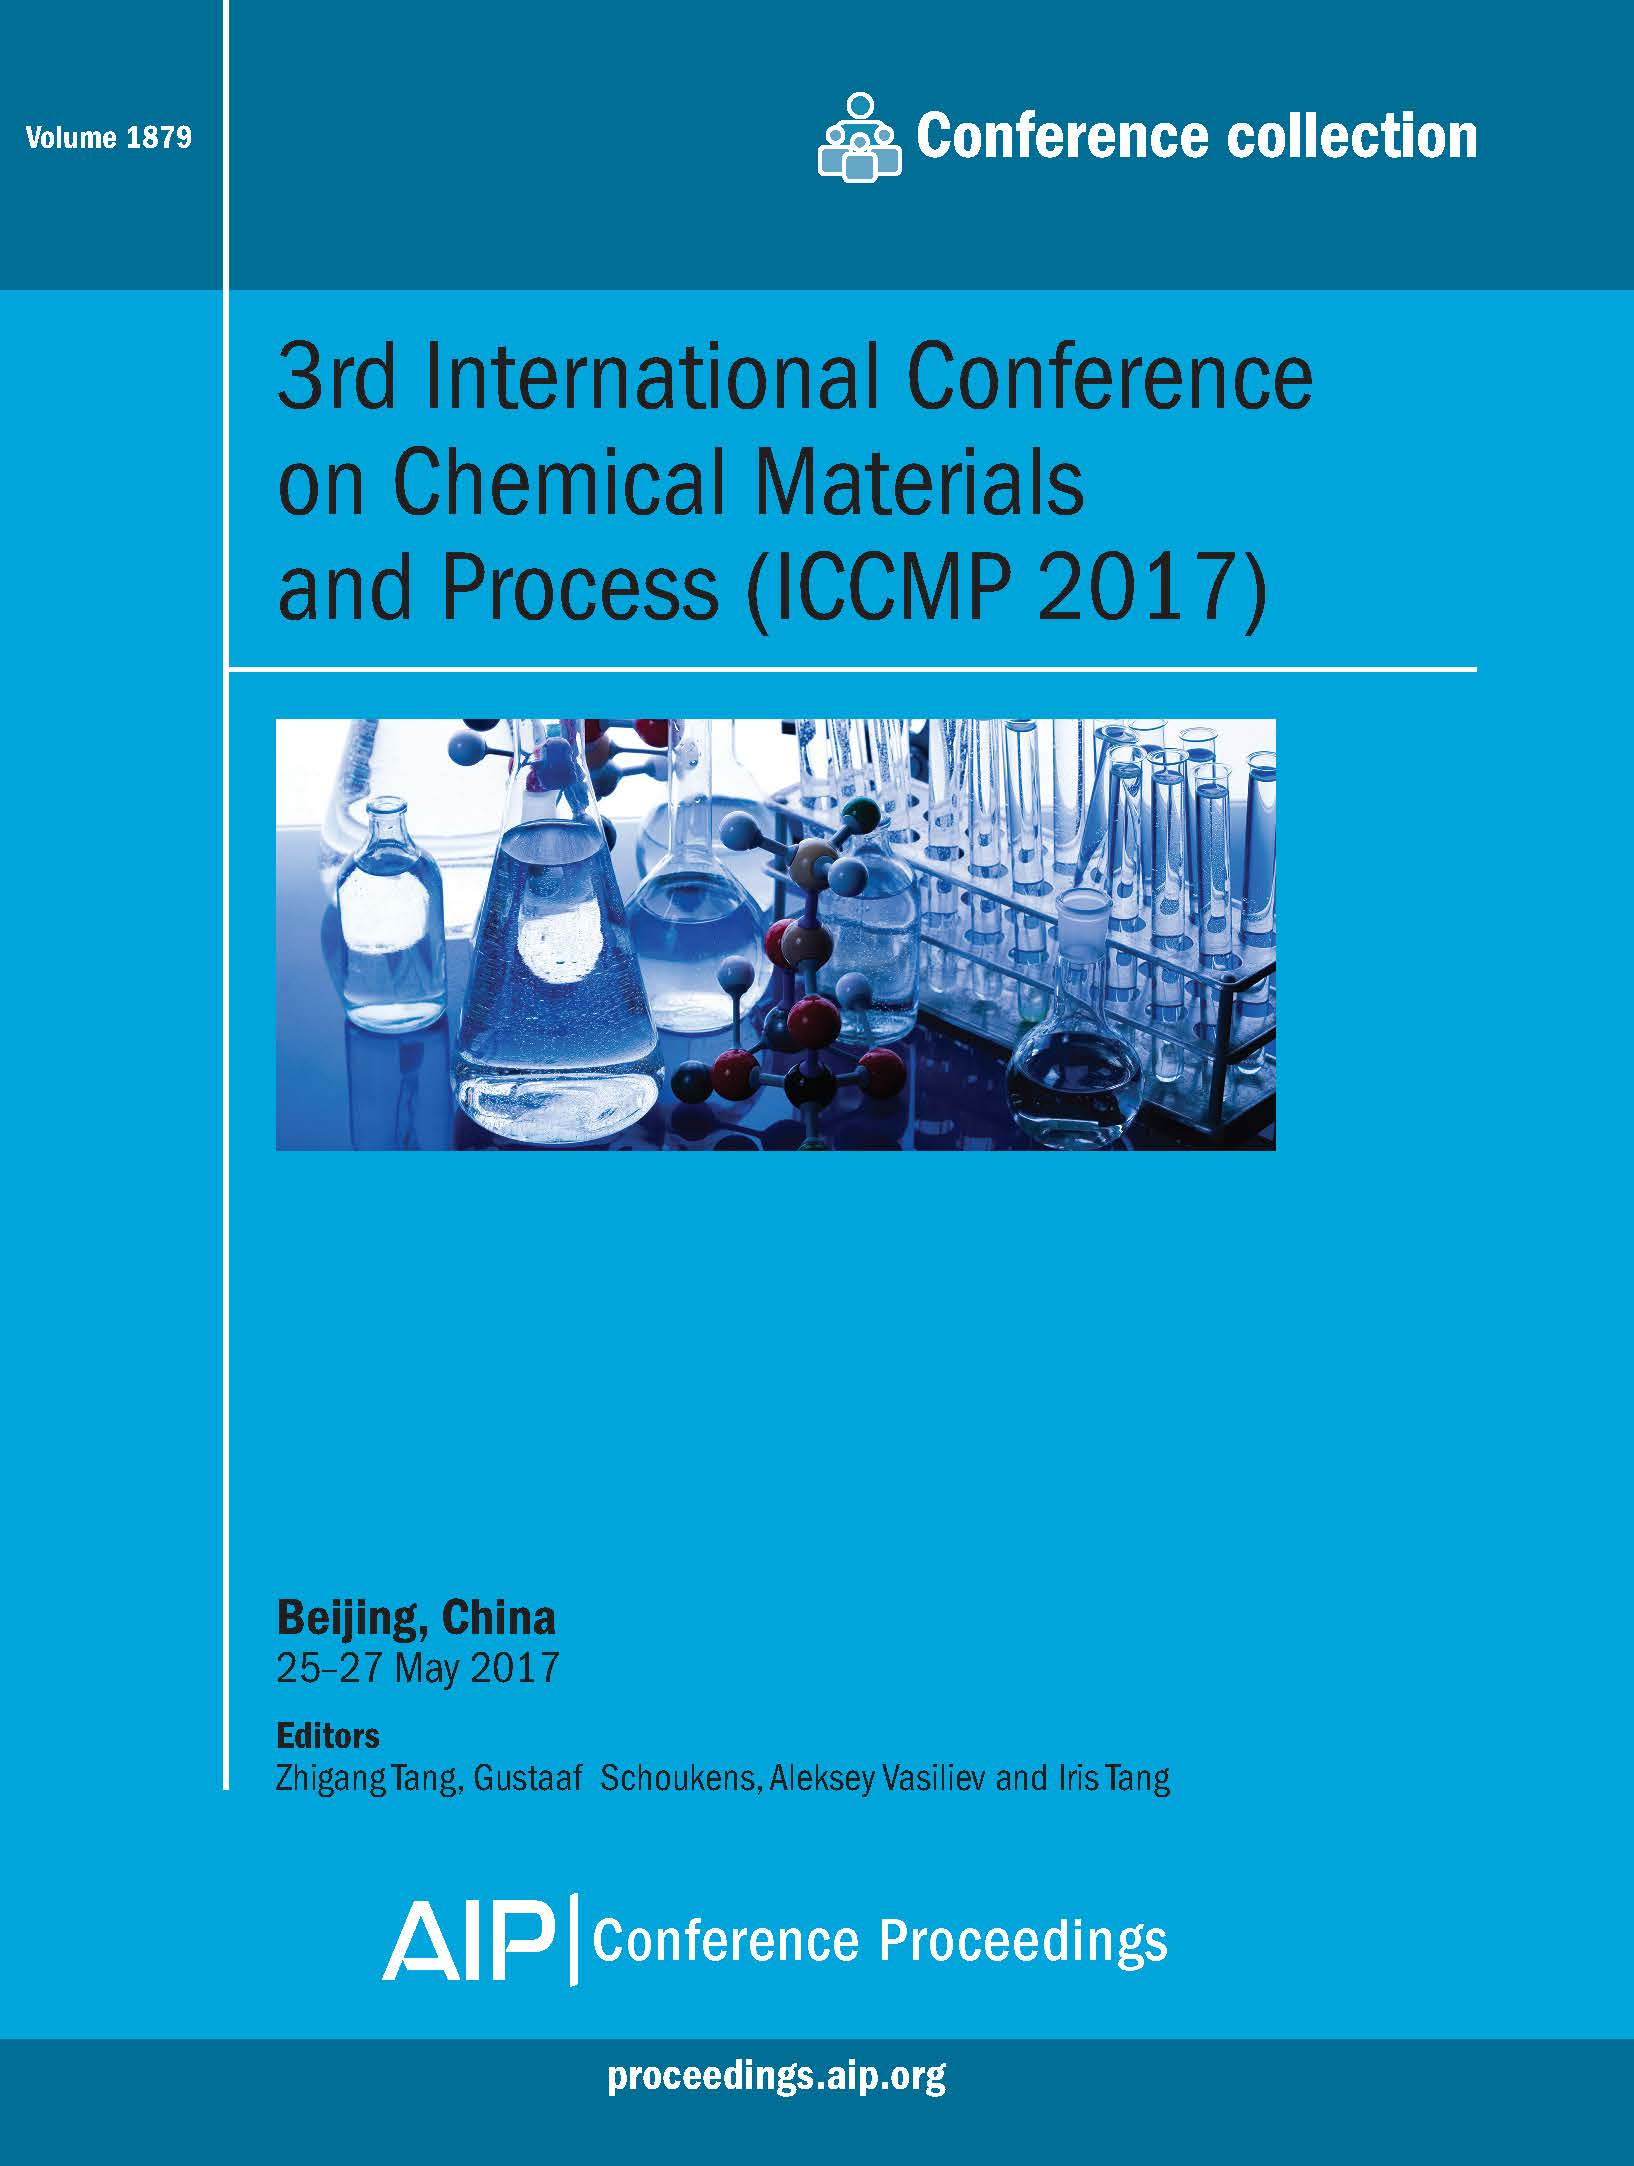 Volume 1879: 3rd International Conference on Chemical